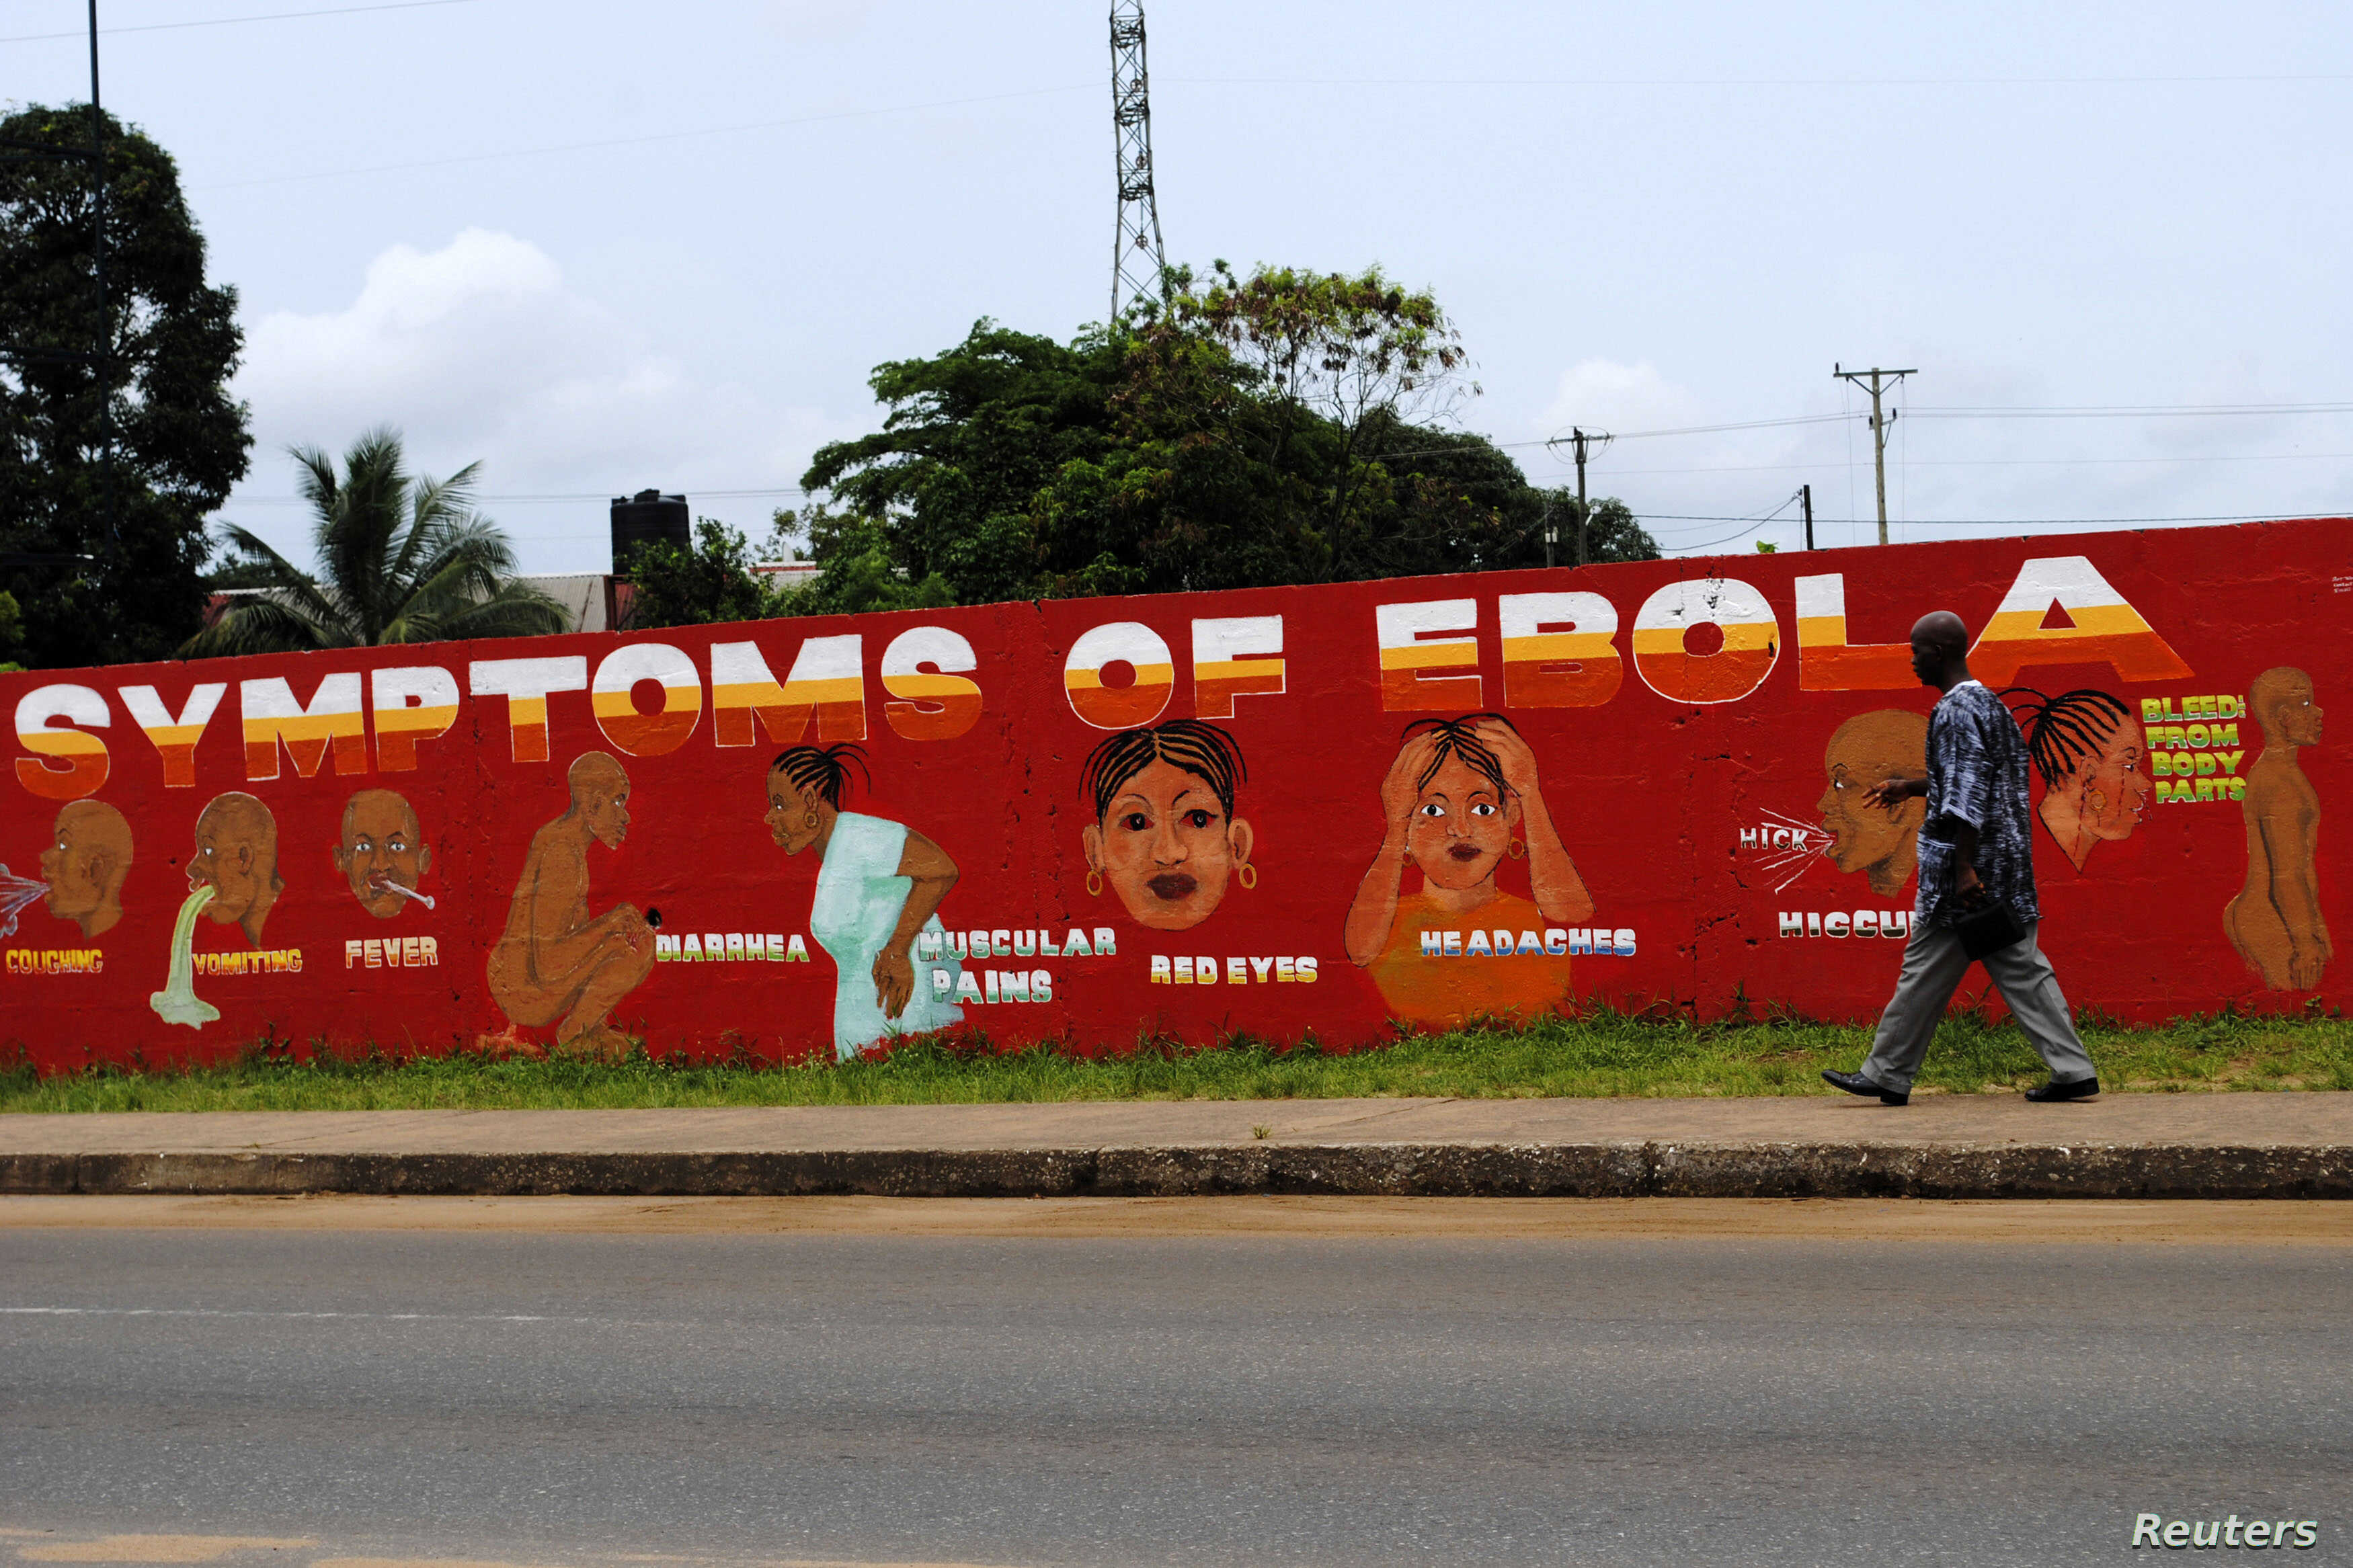 """A man walks by a mural that reads """"Symptoms of Ebola"""" in Monrovia, Liberia, Oct. 12, 2014."""